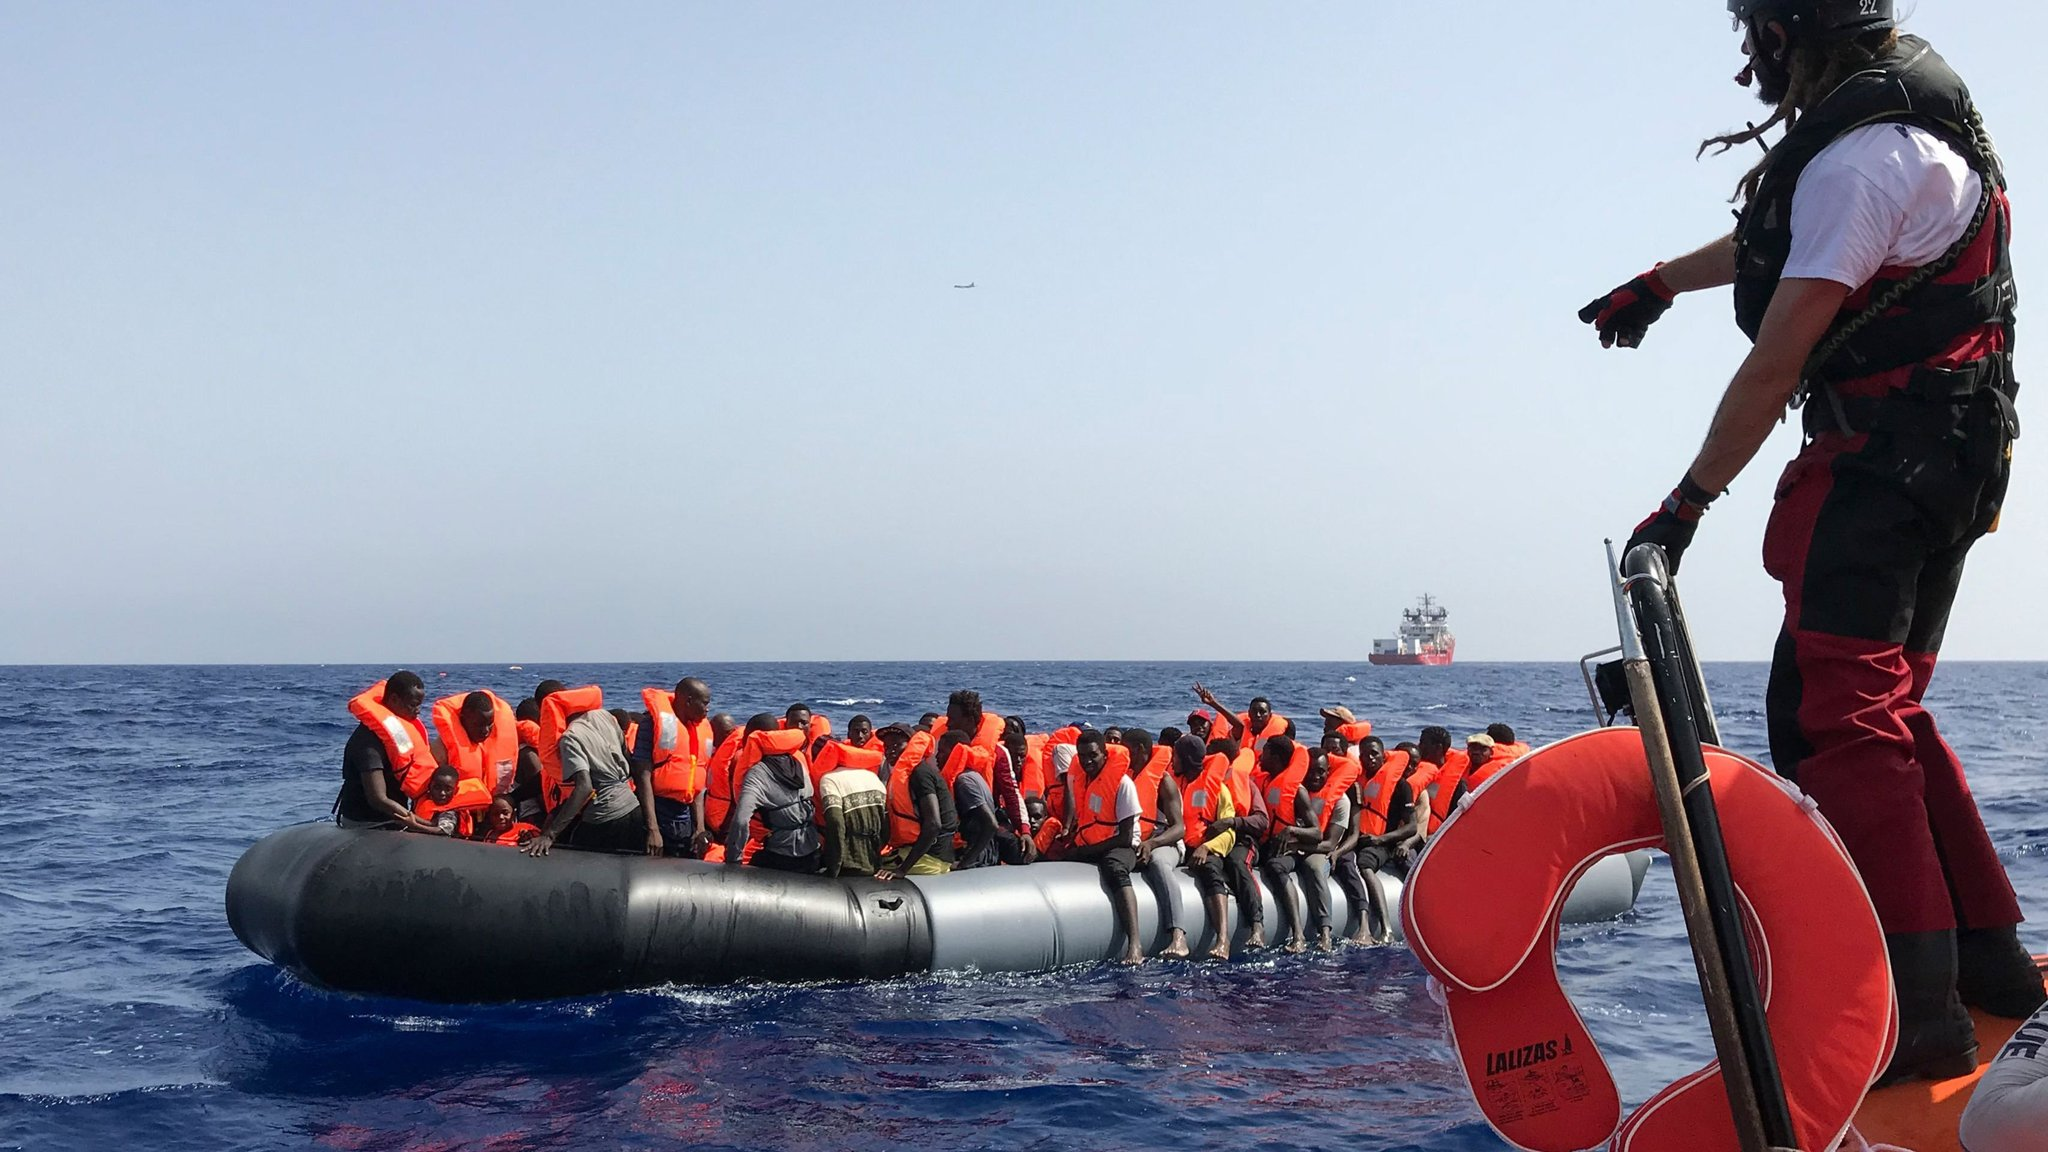 Europe must not close its doors to refugees and migrants